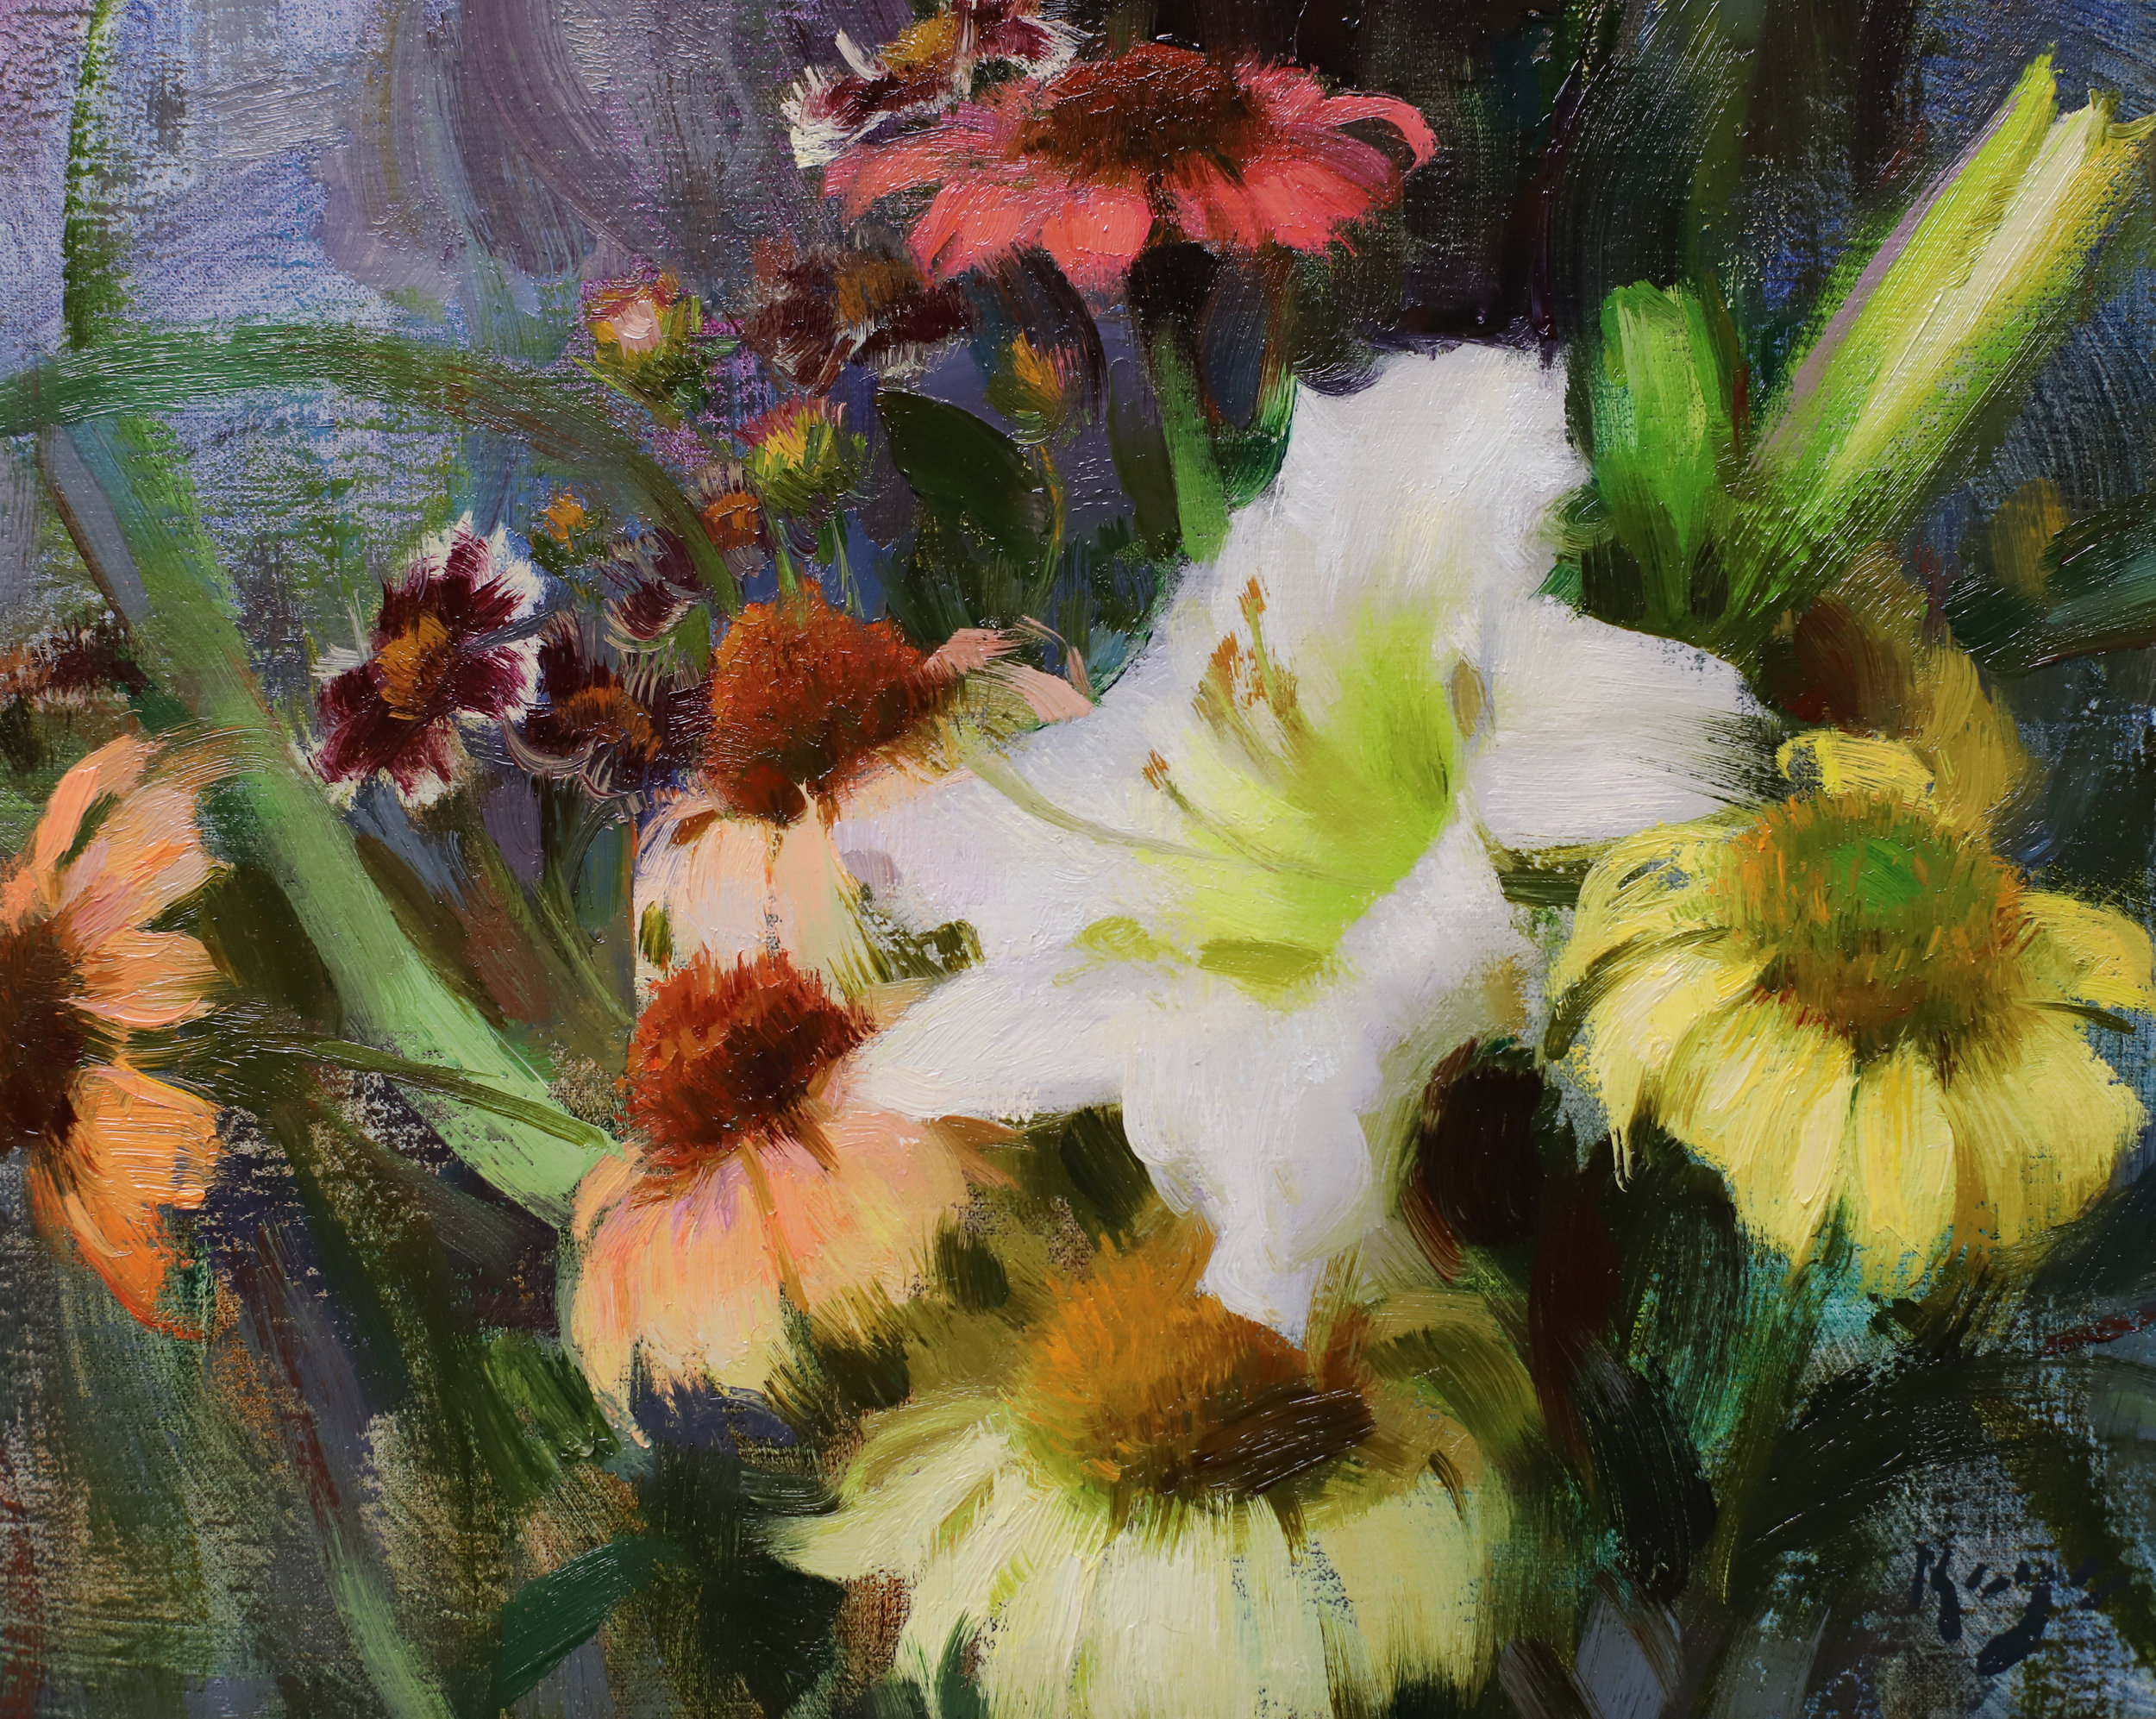 Daylily, Echinacea, & Coreopsis, 9 x 12 inches, oil